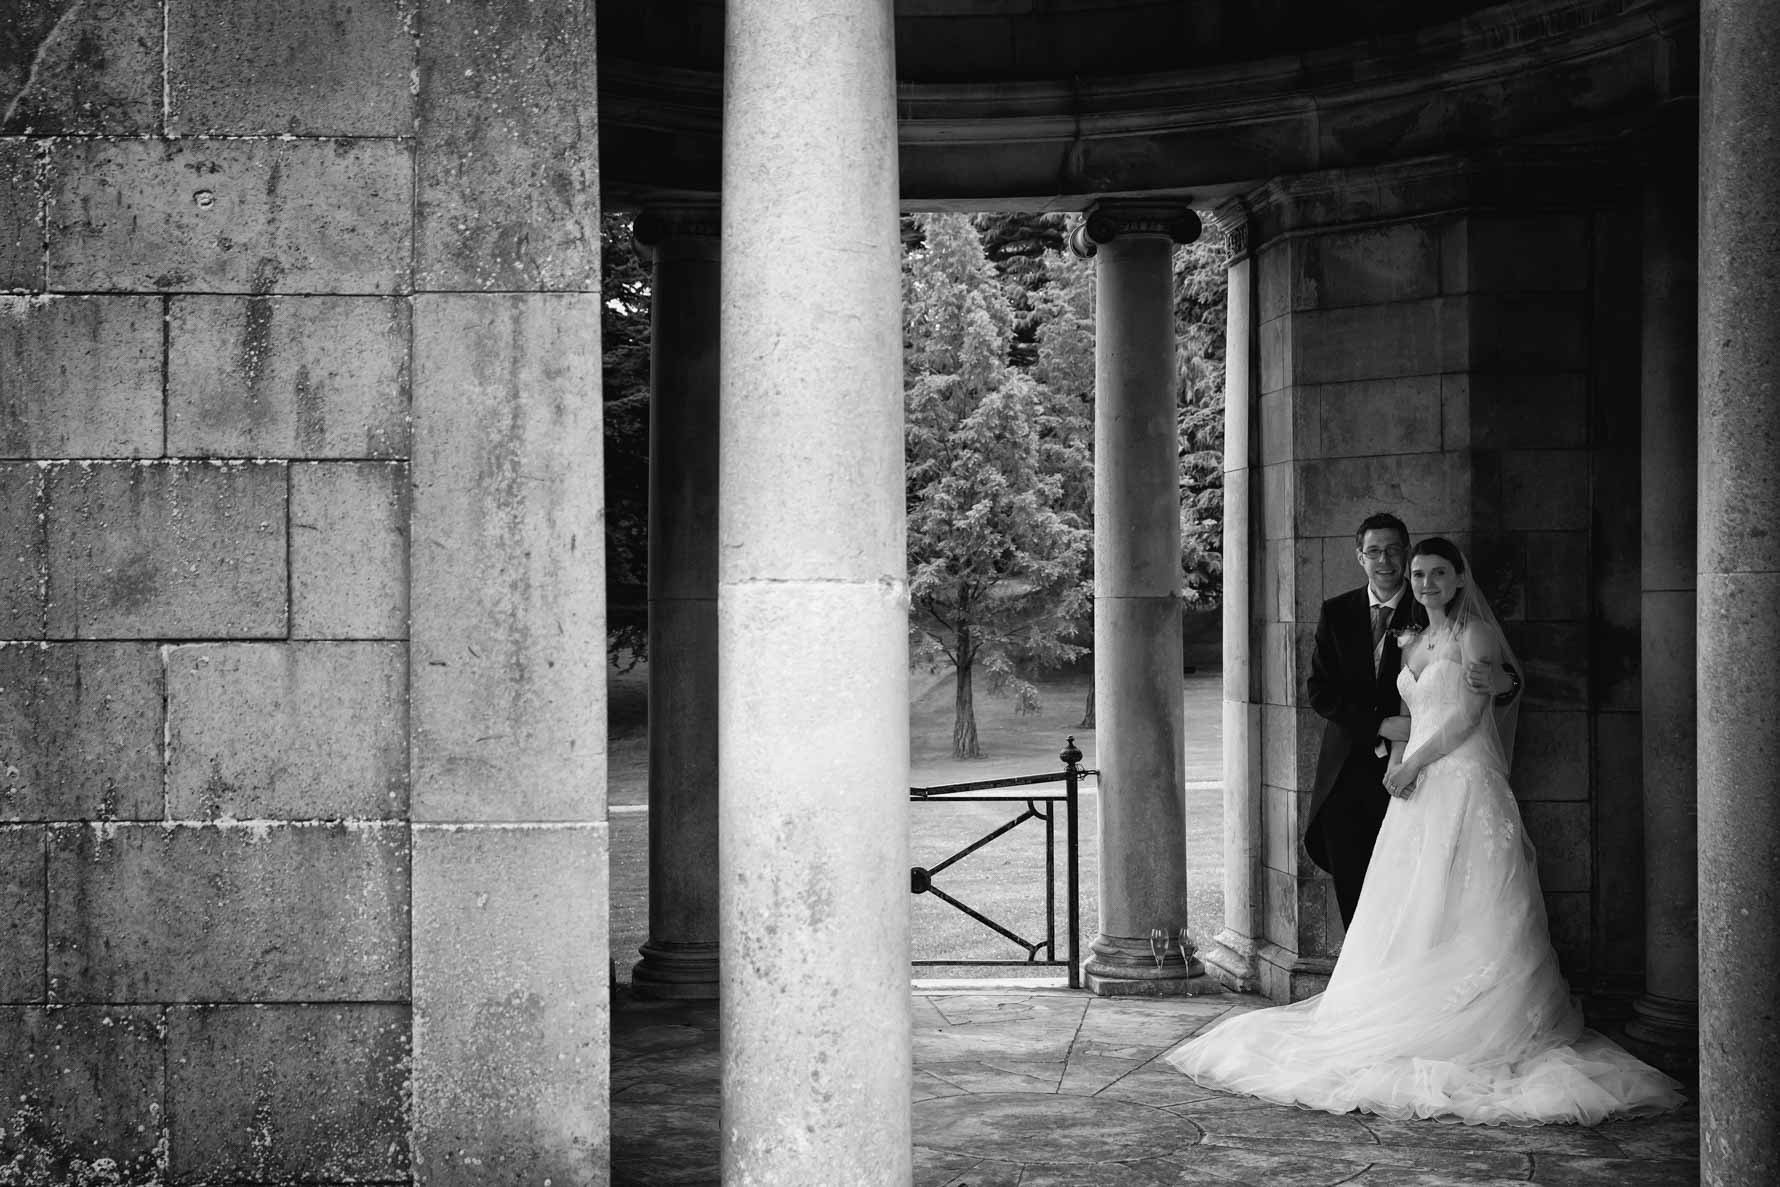 Bride and groom in grounds of Luton Hoo Hotel by Hertfordshire wedding photographer Graham Warrellow